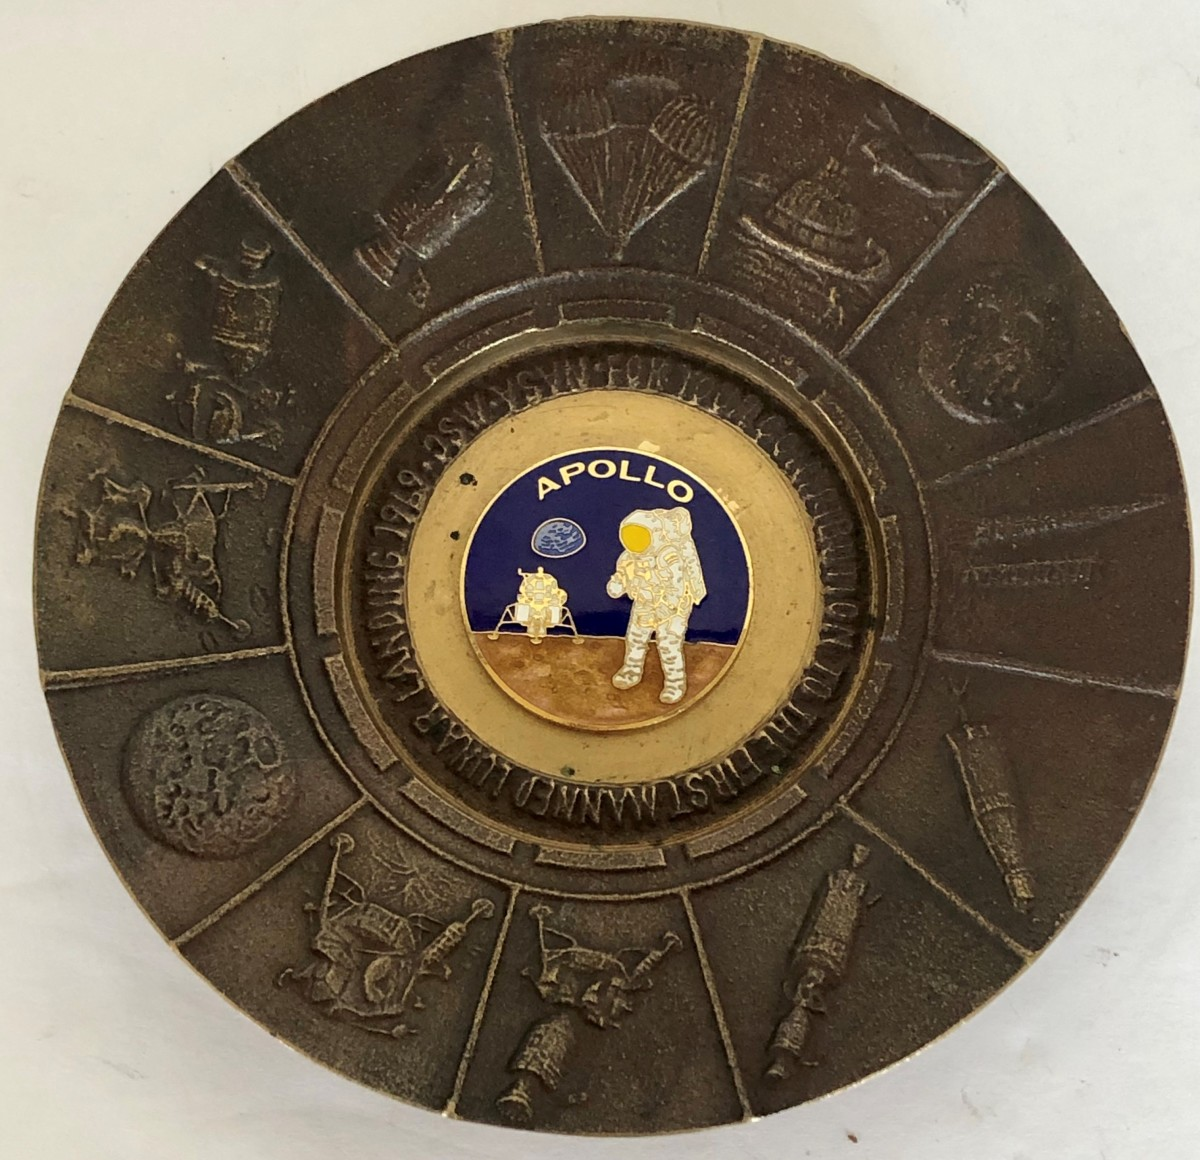 This brass dish was given only to NASA employees in 1969 to celebrate the successful manned moon landing. It was never commercially available. Bradley paid $1 for it and sold it at auction for $225. Score!